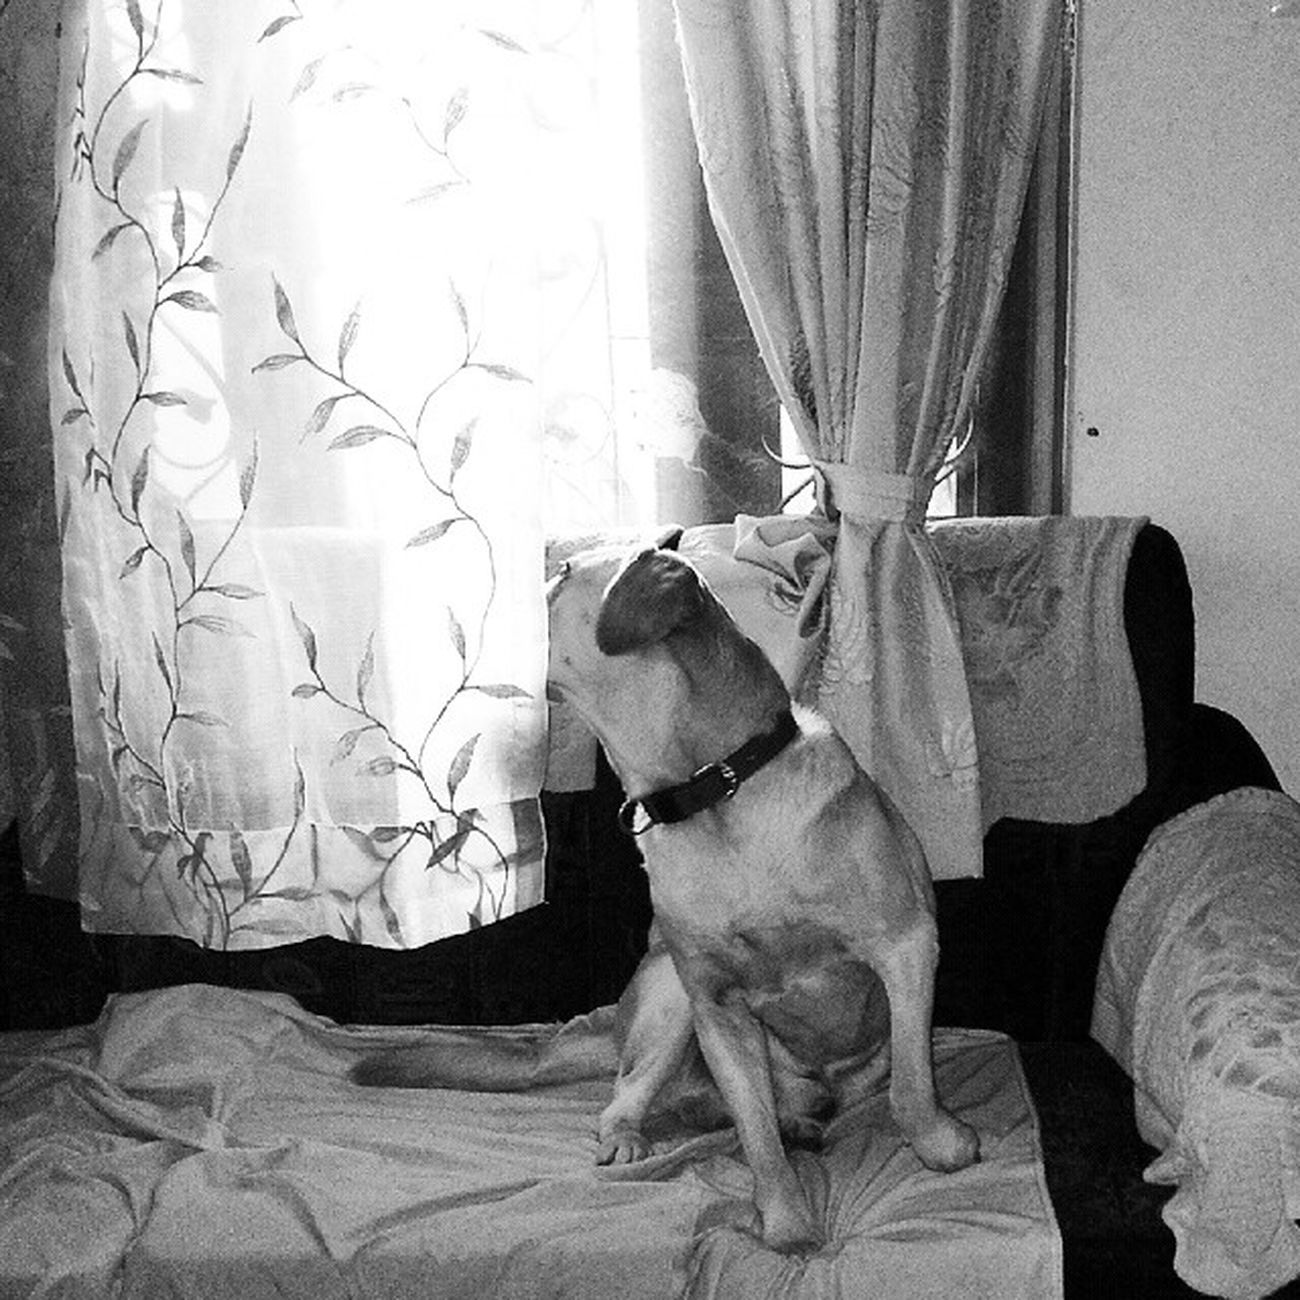 Most of the times, when any family member is out a long time( in this case my mom and dad ), snoopy waits by the window, reacts to even the smallest of sounds.. That longing in his eyes, that restlessness in his movements.. Bhubaneswar Odisha Fablab Labradorsofinstagram Dogs Wait Faith Loyal